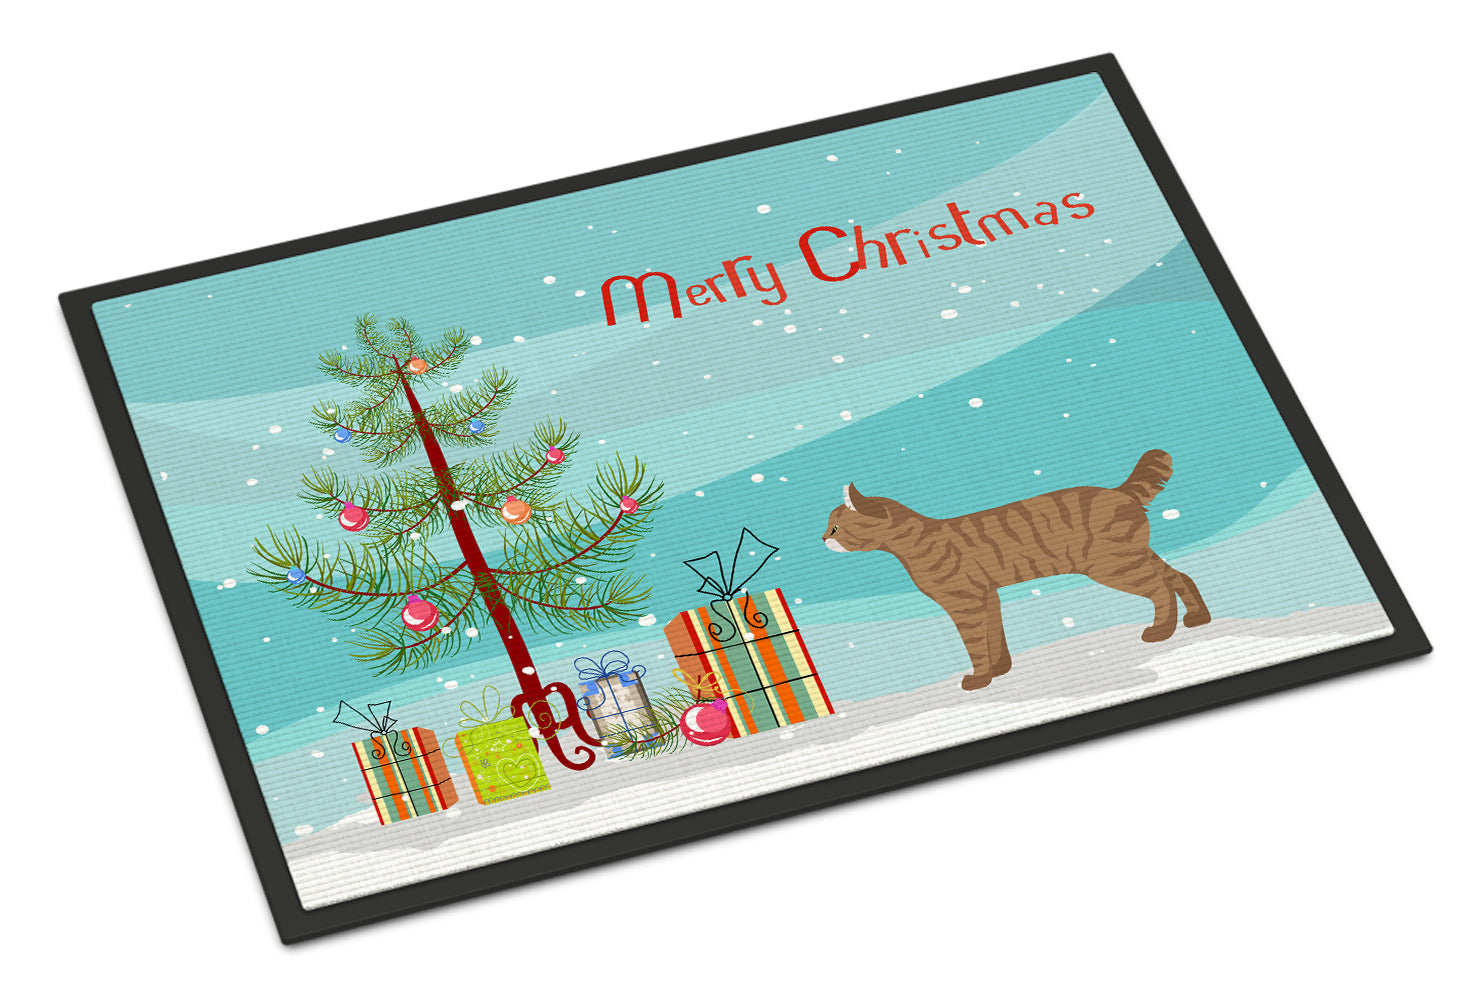 Highlander Lynx #1 Cat Merry Christmas Indoor or Outdoor Mat 18x27 CK4630MAT by Caroline's Treasures